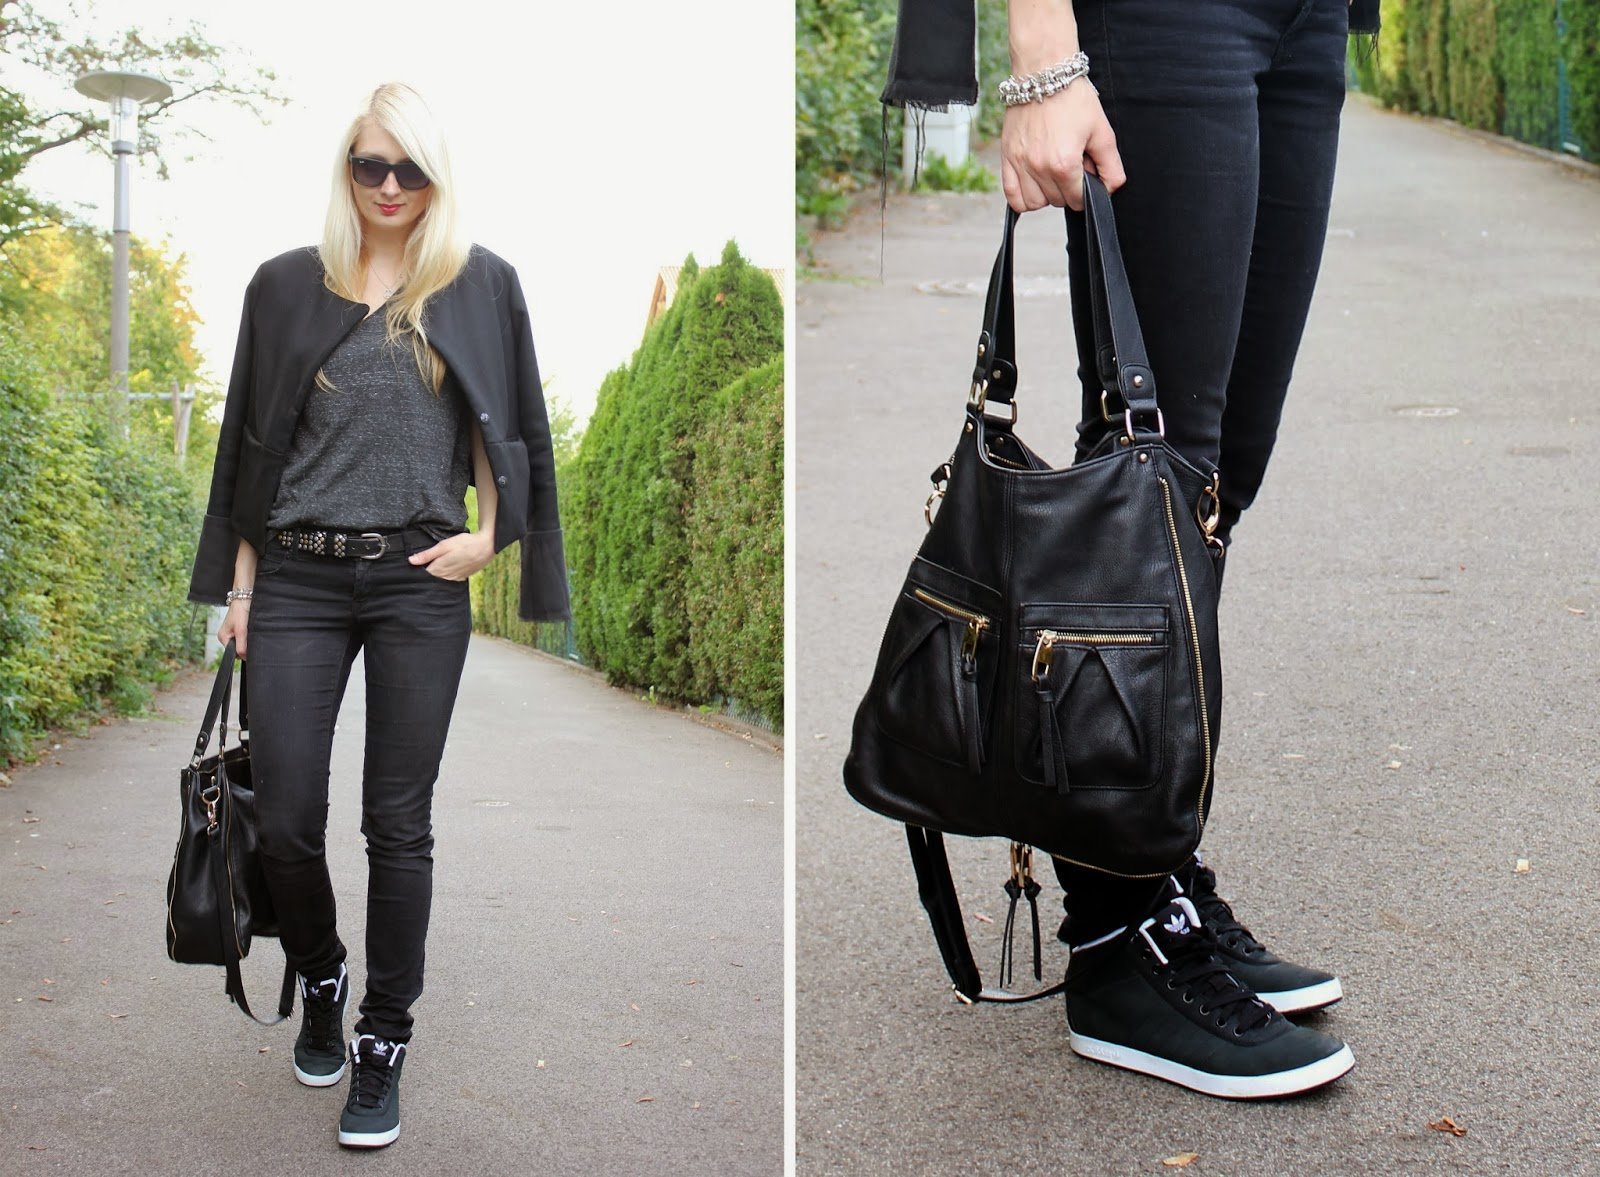 By SneakersFashion Lola Blackamp; Finn All About Outfit It´s NXZ8Pkn0wO